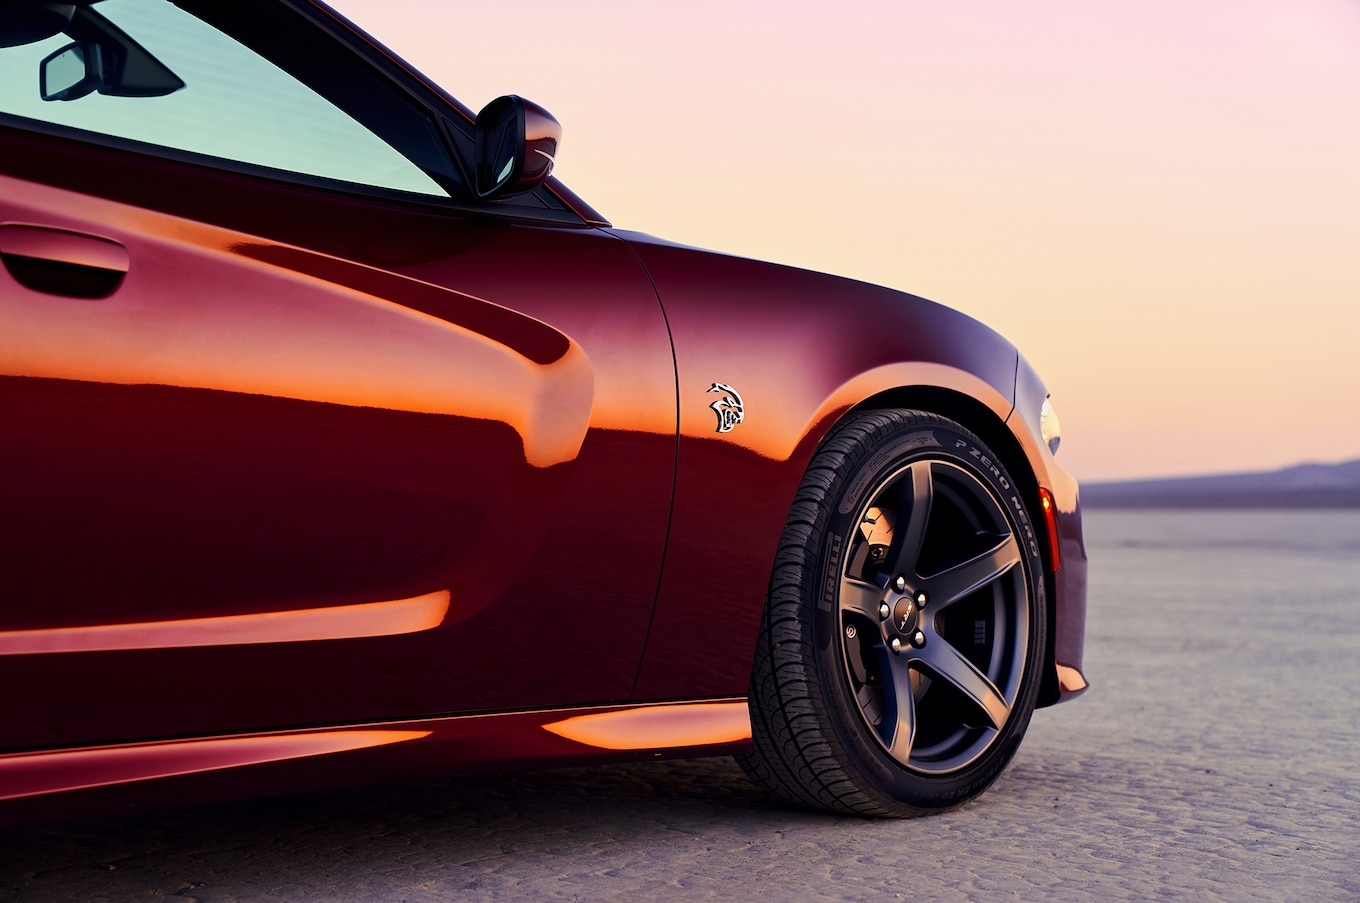 2019 Dodge Charger SRT Hellcat Wheel Wallpaper (5)